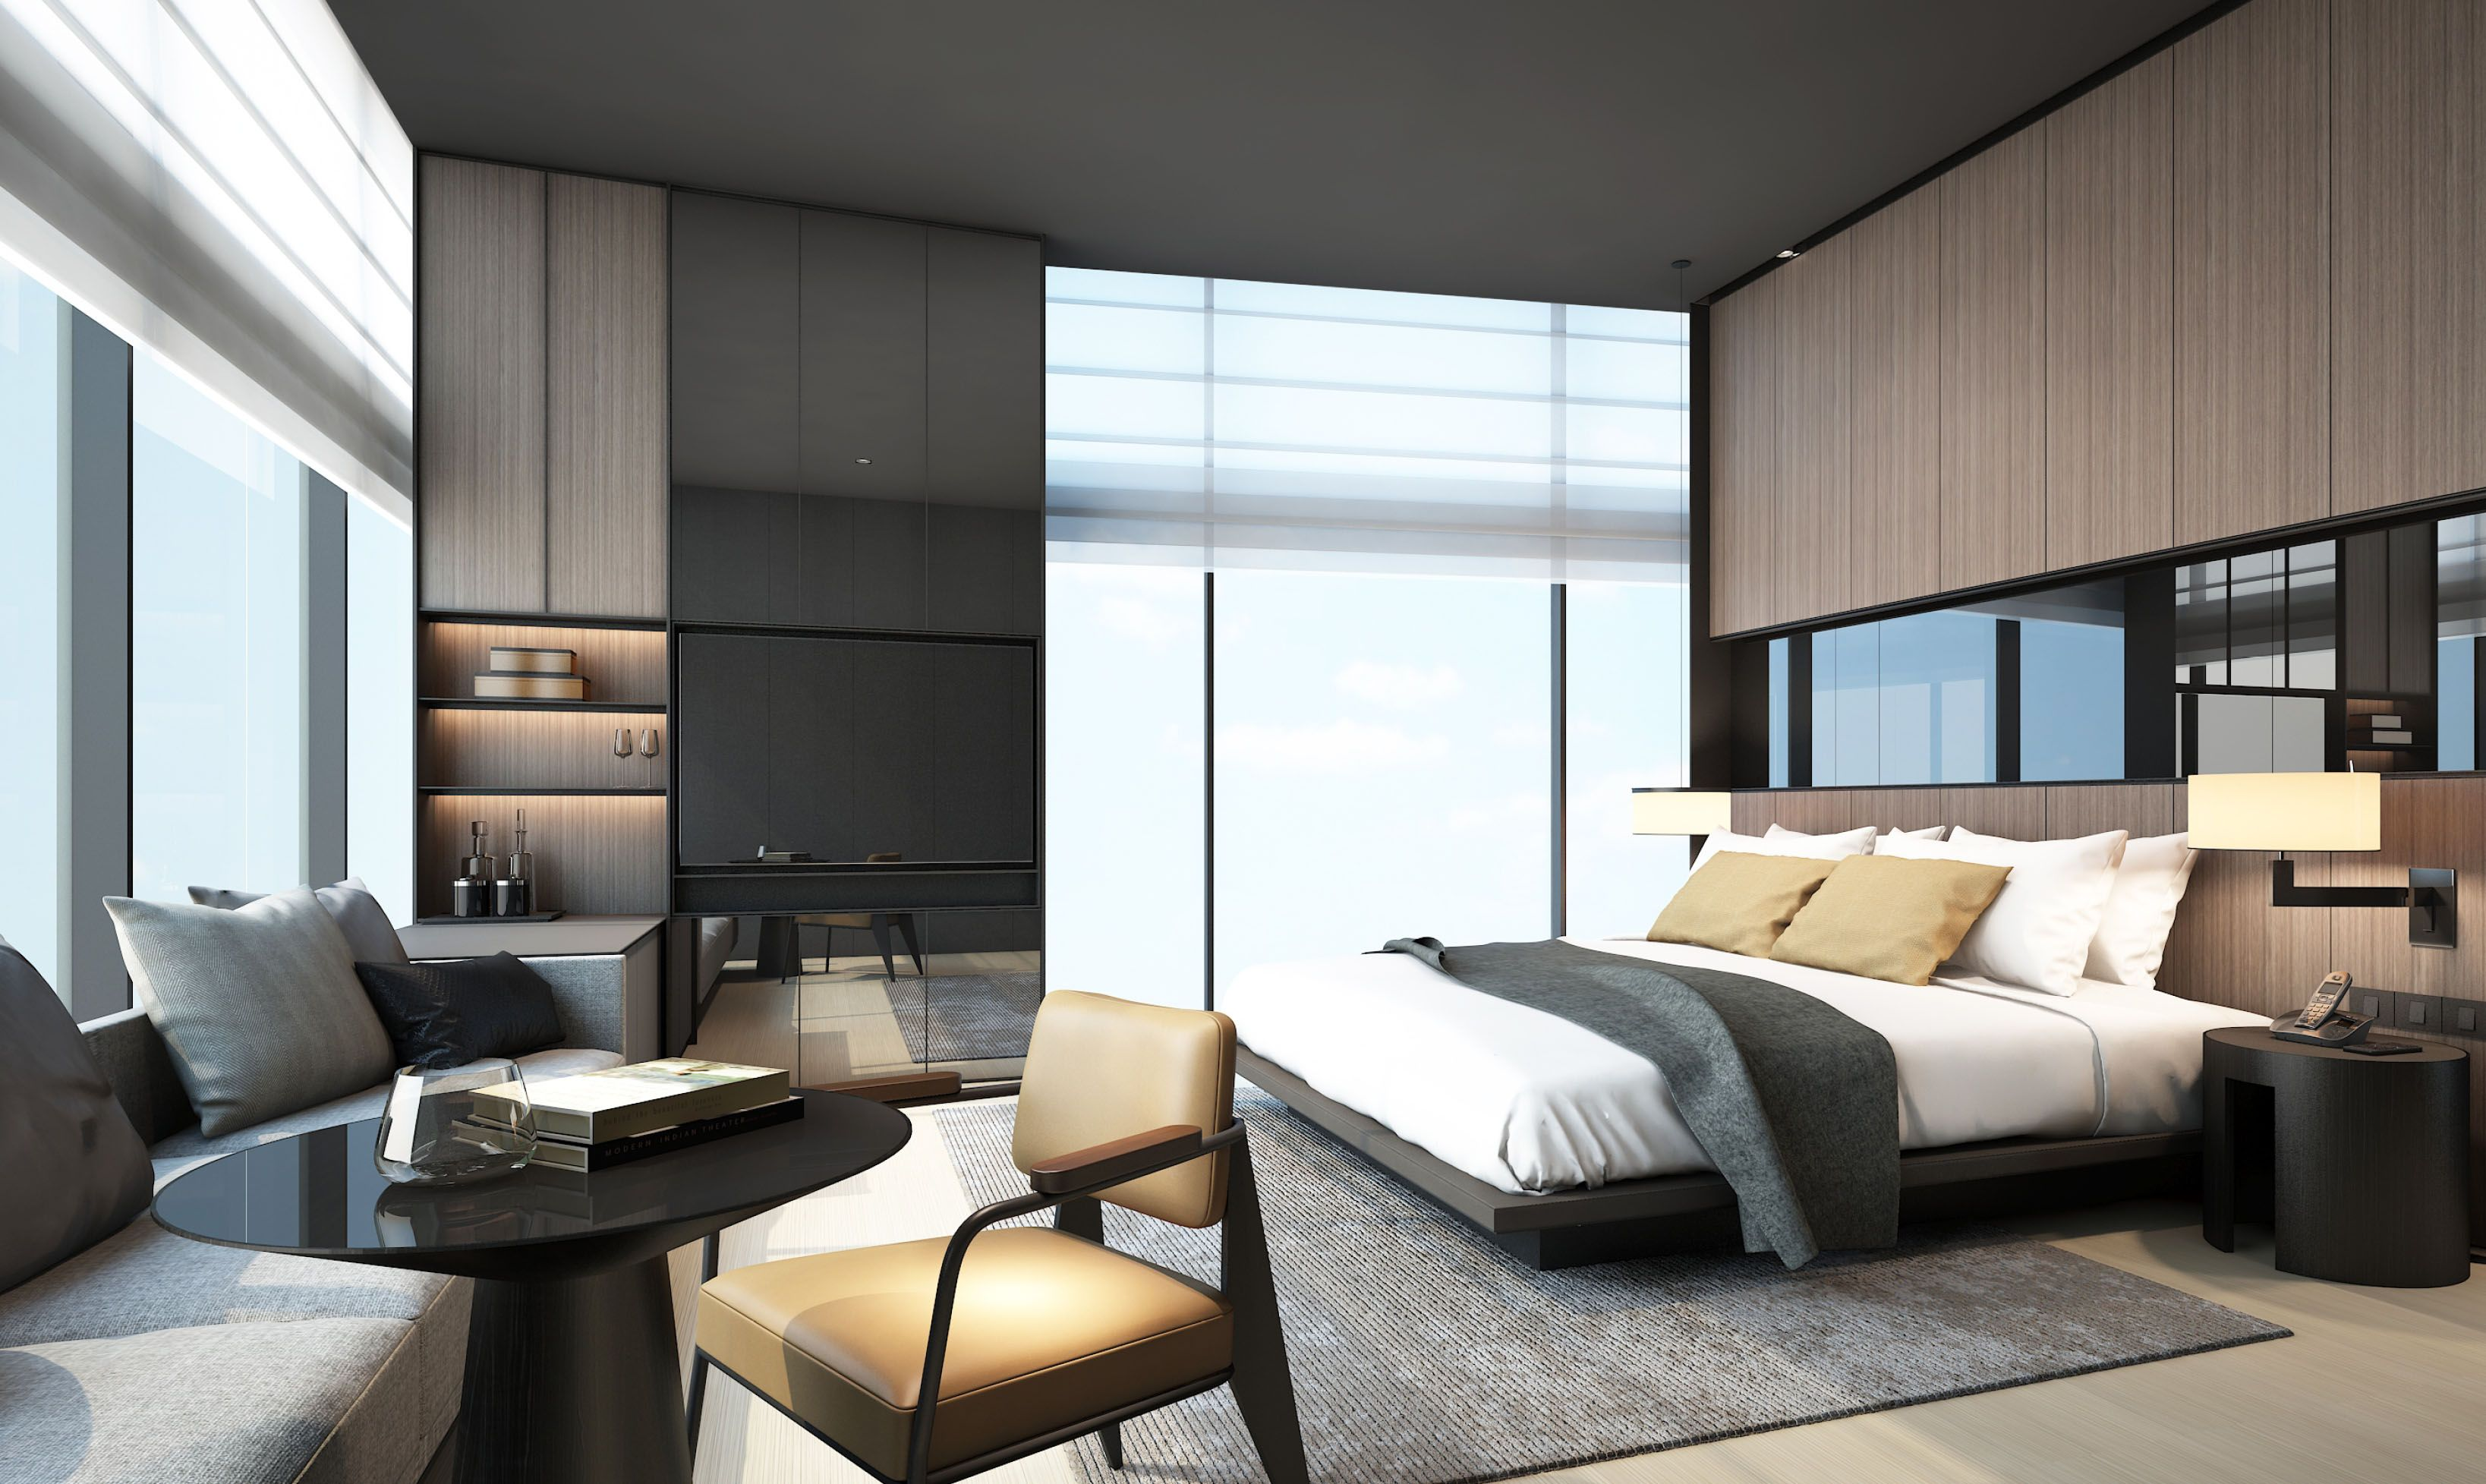 Scda hotel development singapore suites ideas for for Modern hotel decor